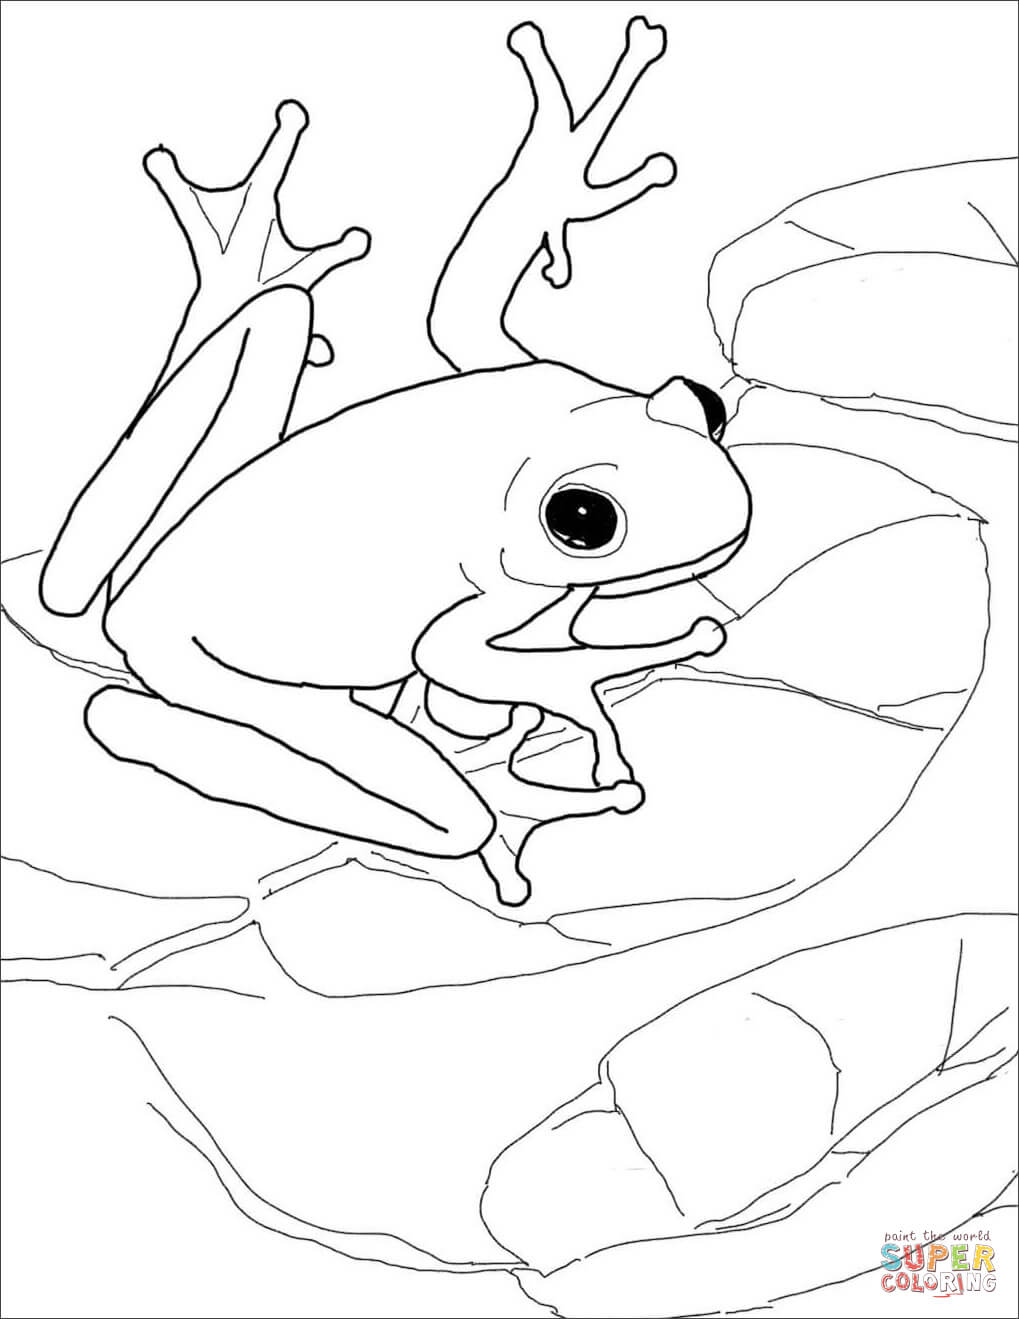 rainforest frog coloring pages rainforest animals coloring pages printable rainforest pages rainforest coloring frog